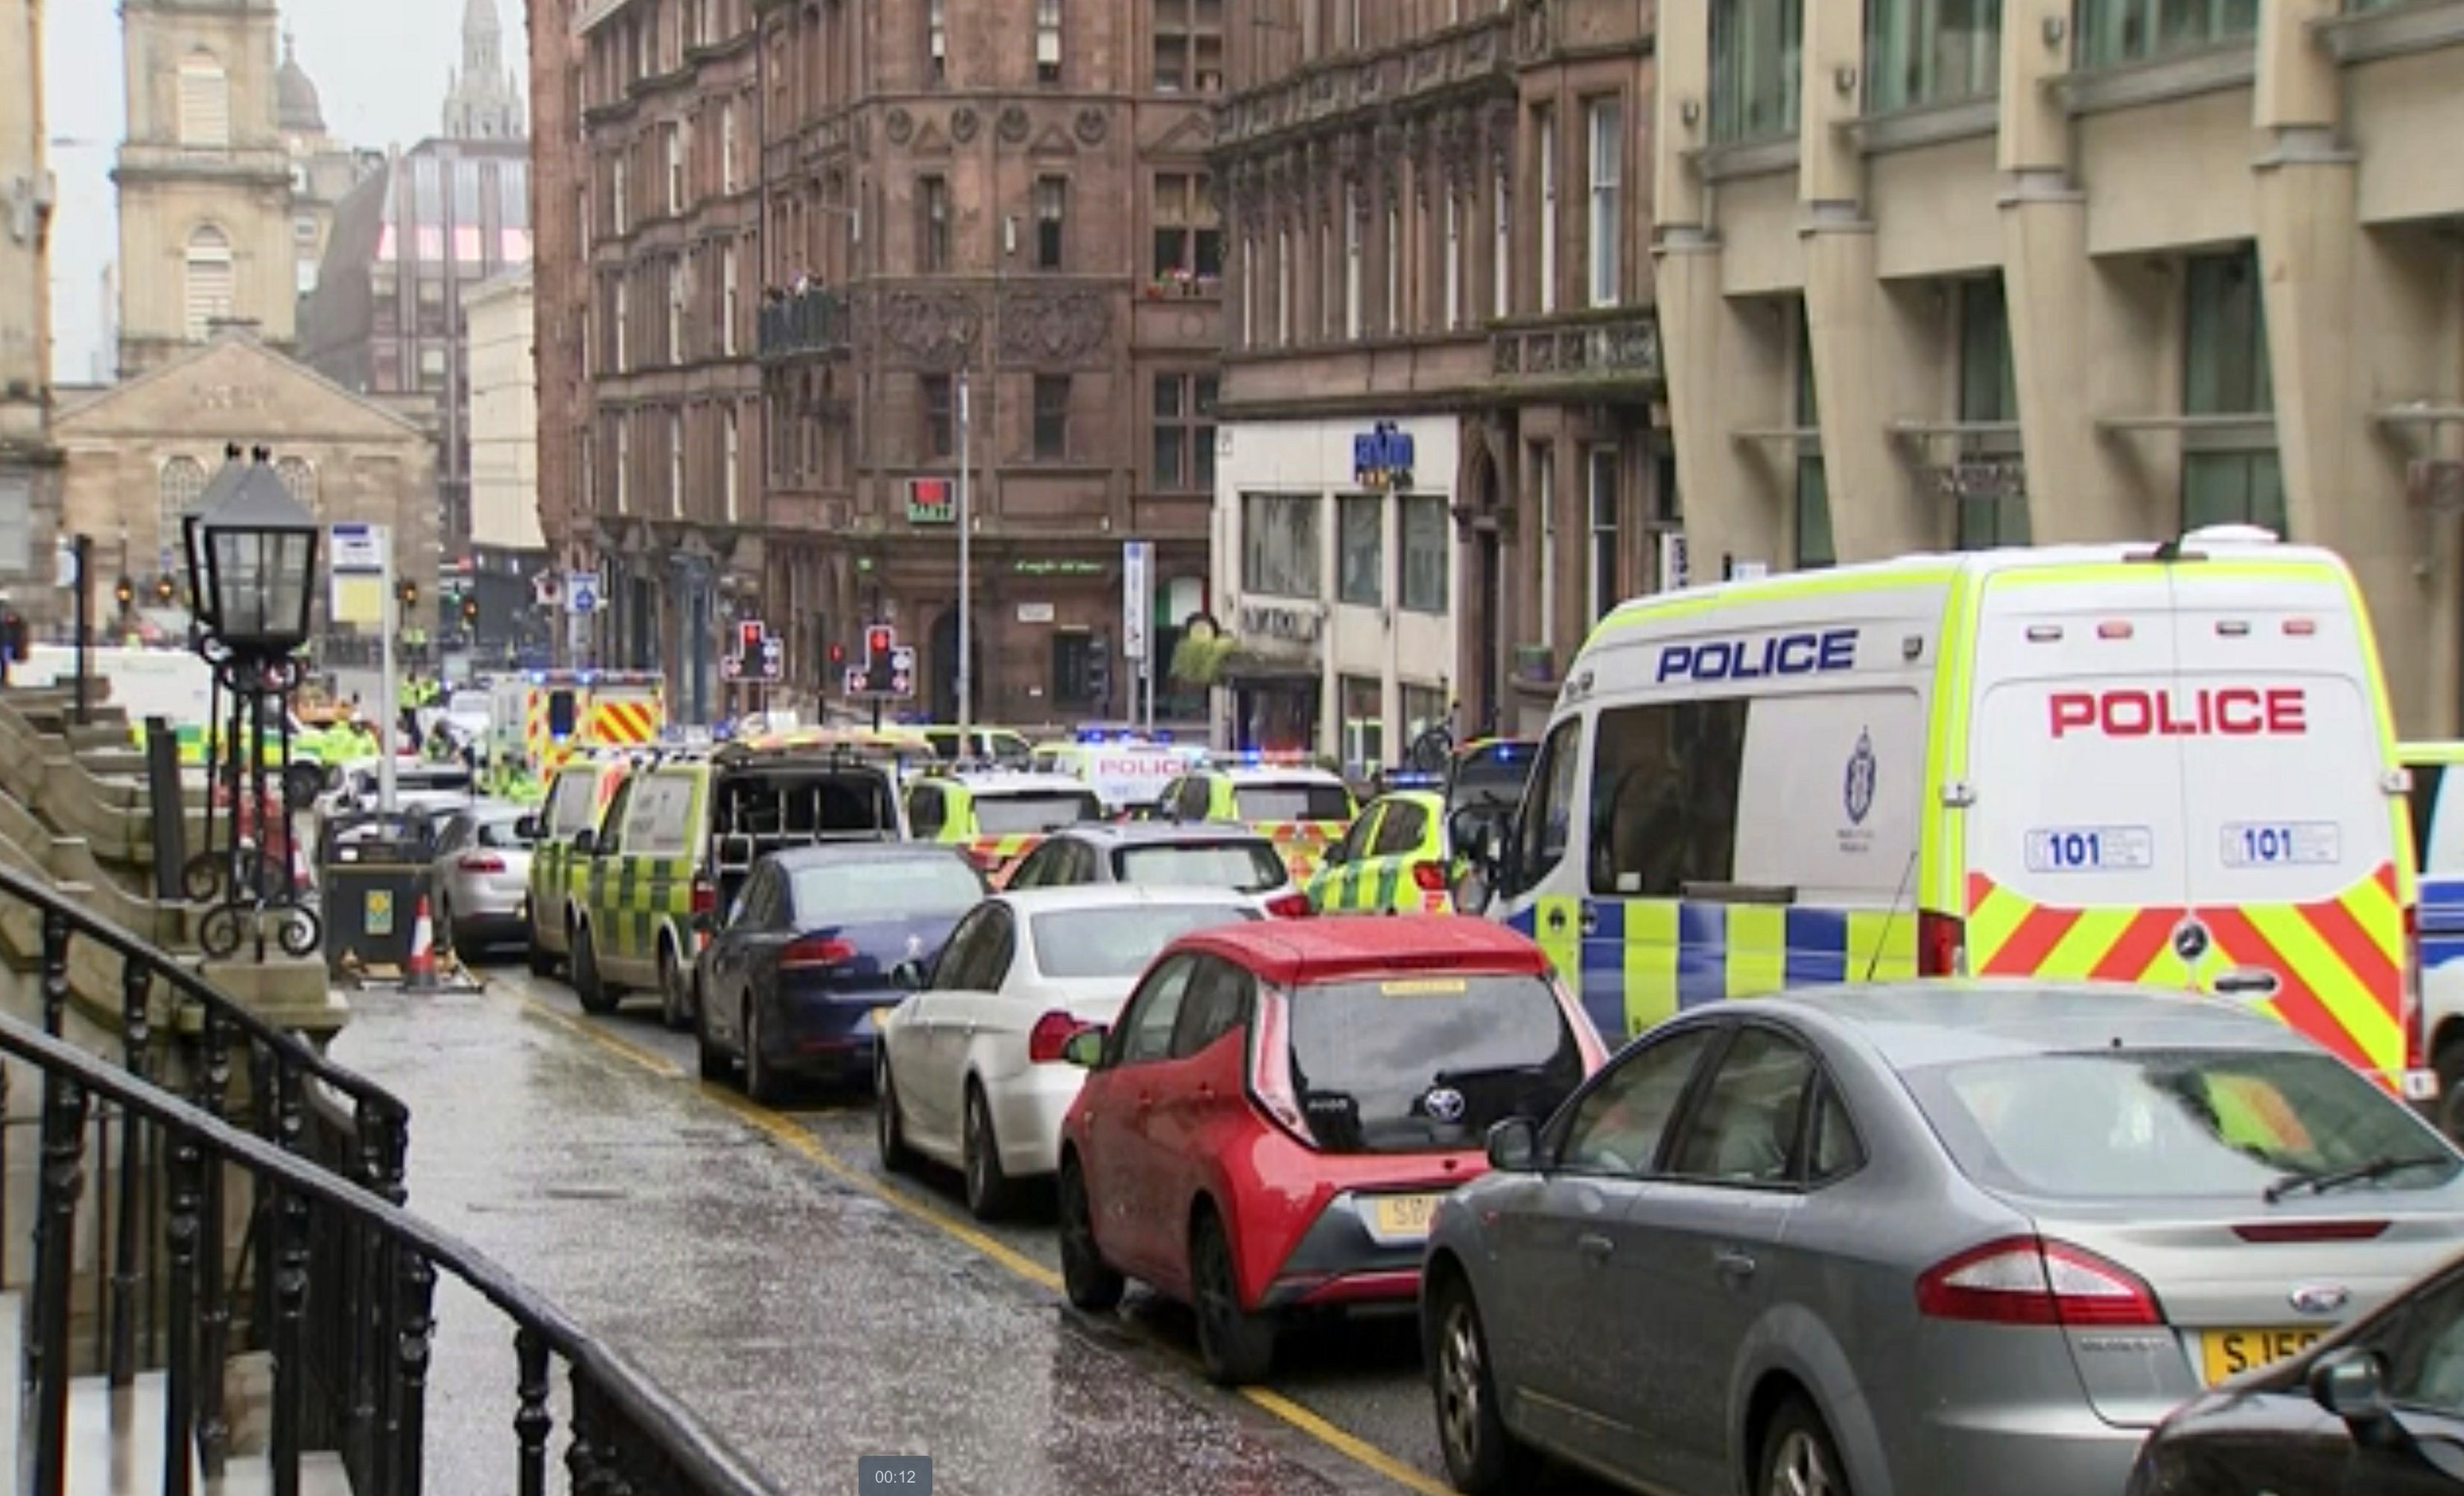 Police officer stabbed, suspect shot in Glasgow